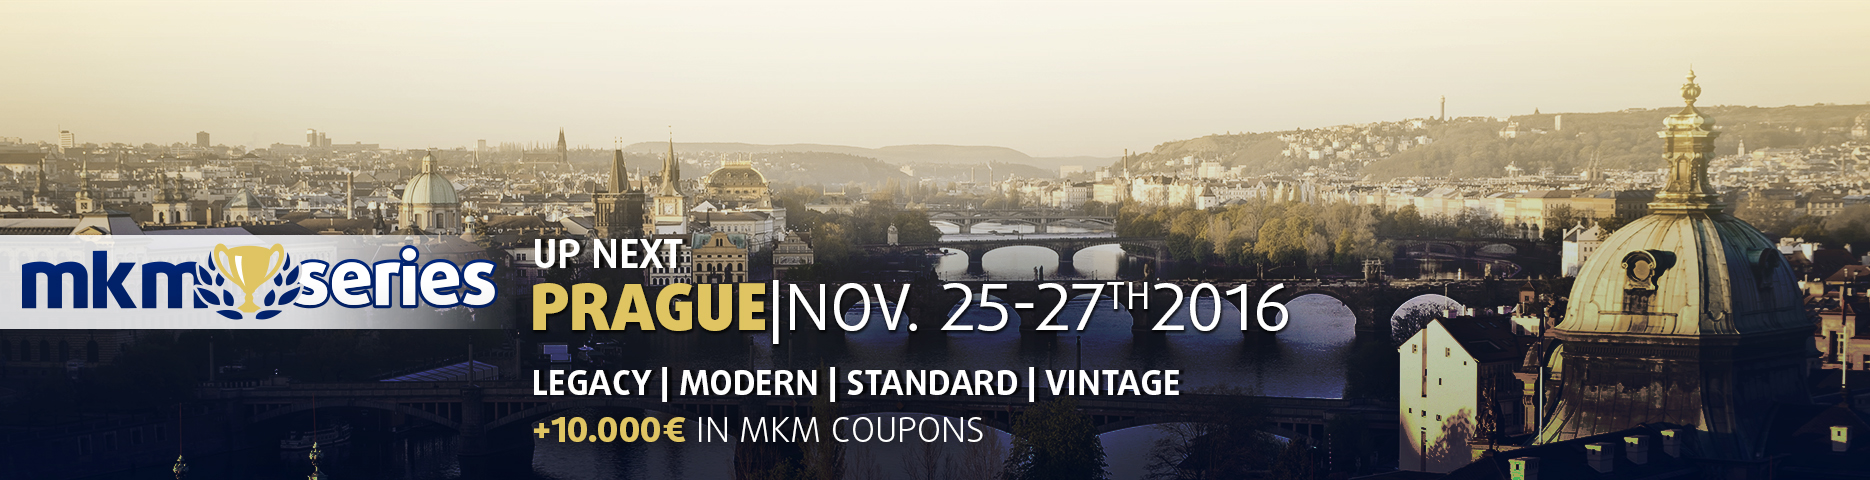 MKM Series Prague 2016